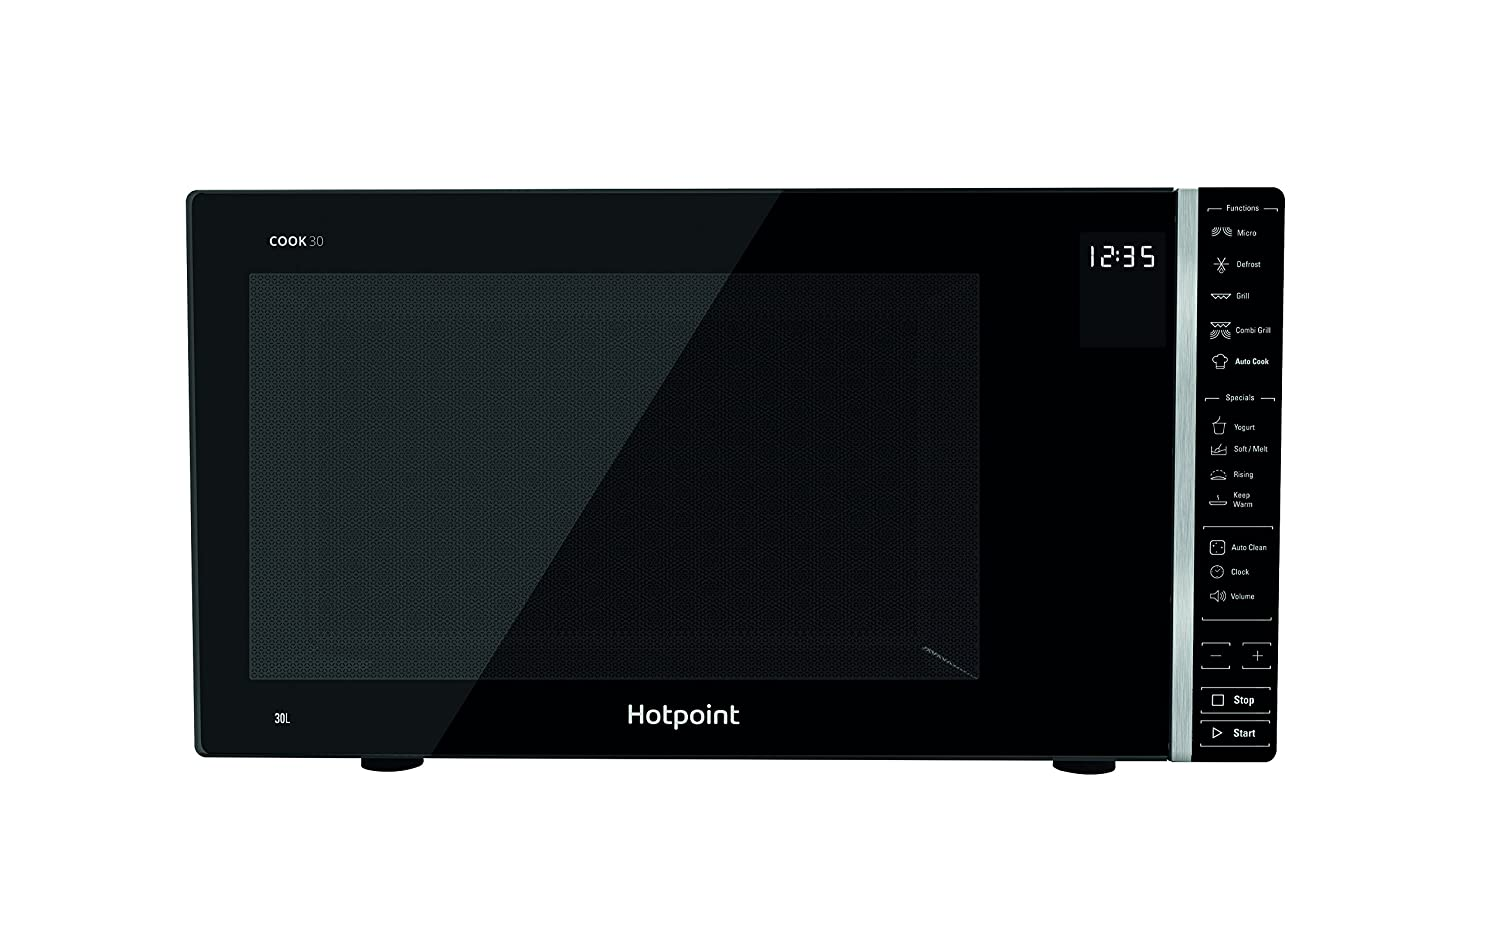 Hotpoint MWH 303 B Cook 30 Grill Microwave, 900 W, 30 liters, Black